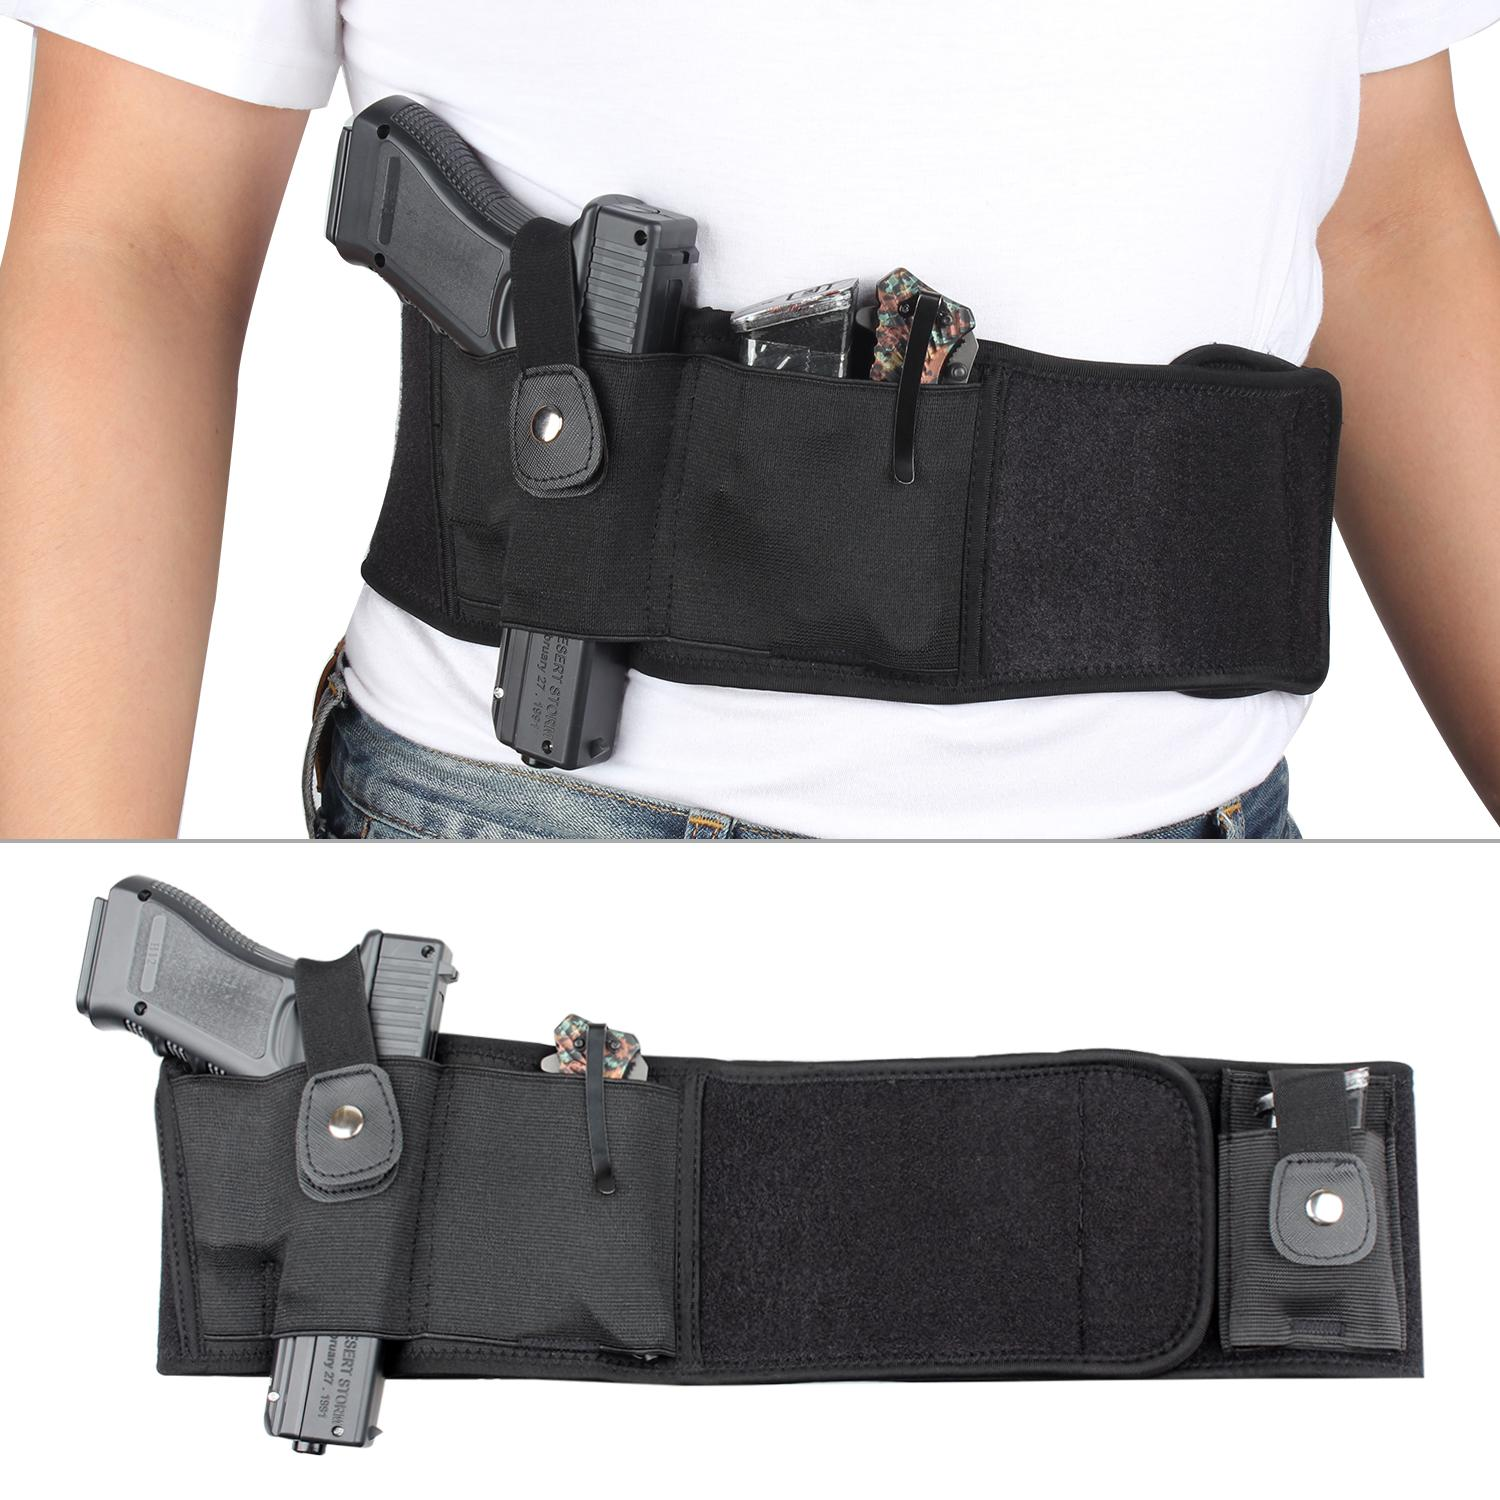 Concealed Carry Belly Wrap Holster Belly Gun Holster Abdominal Band Pistol Holster With 2 Magazine Pouches Hunting Holsters